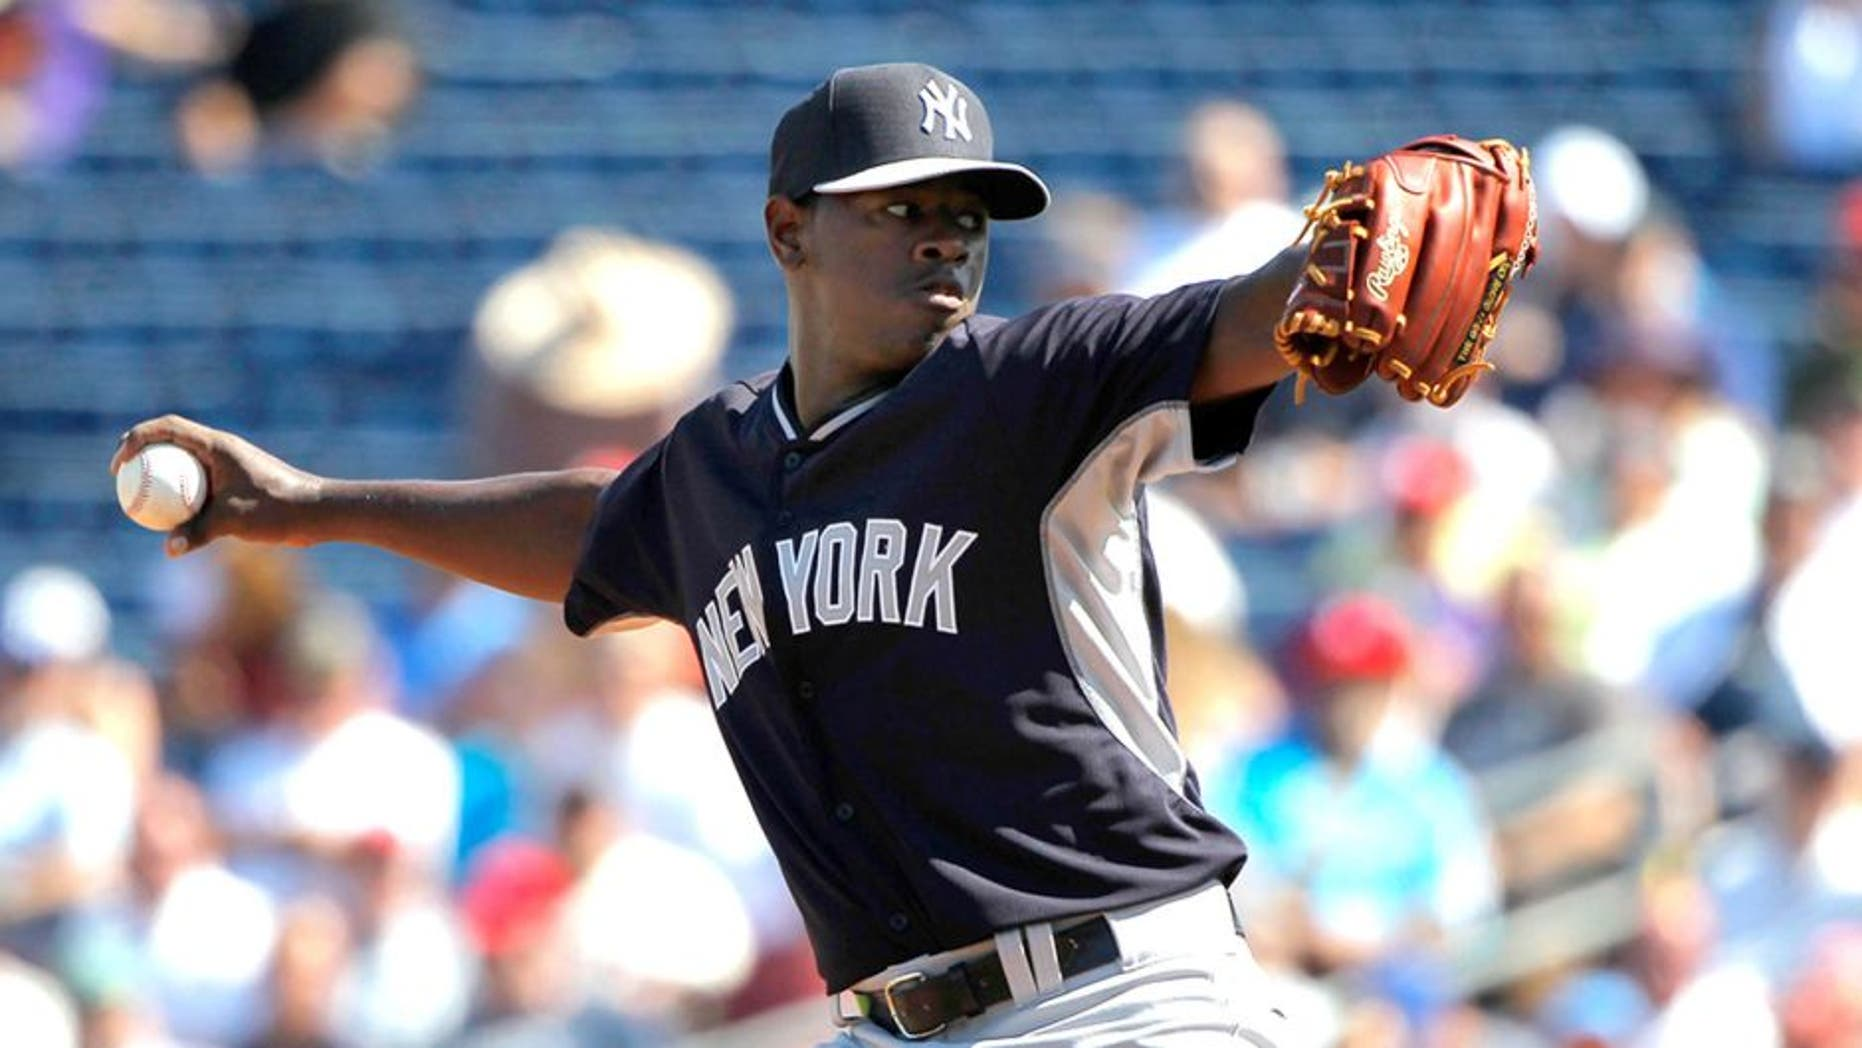 Mar 3, 2015; Clearwater, FL, USA; New York Yankees starting pitcher Luis Severino (91) throws a pitch during a spring training baseball game at Bright House Field. Mandatory Credit: Kim Klement-USA TODAY Sports